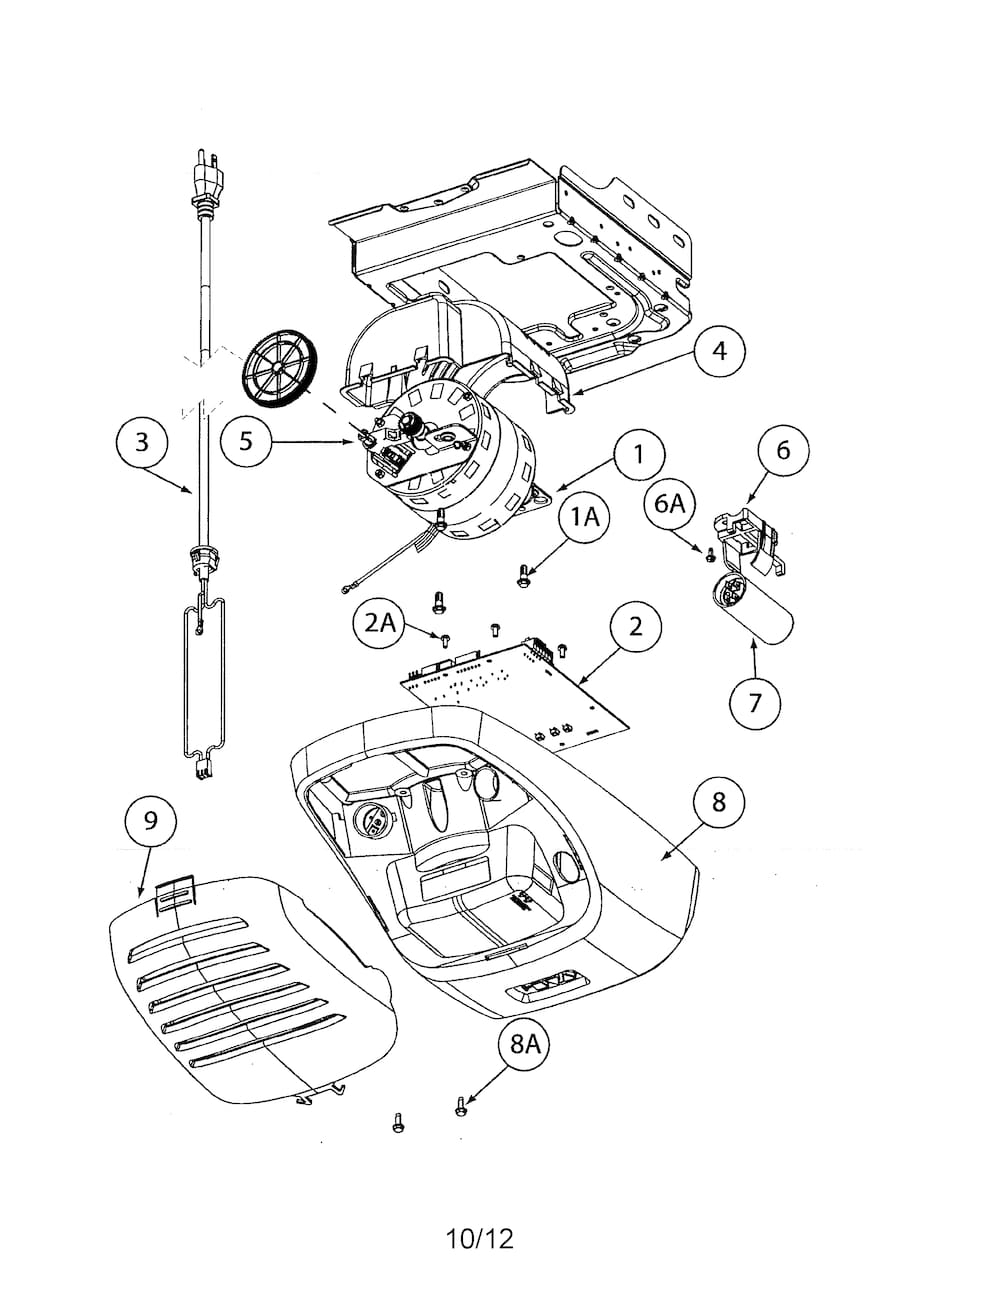 Genie Garage Door Opener Parts | Model 2562 | Sears Partsdirect regarding Genie Garage Door Opener Parts Diagram